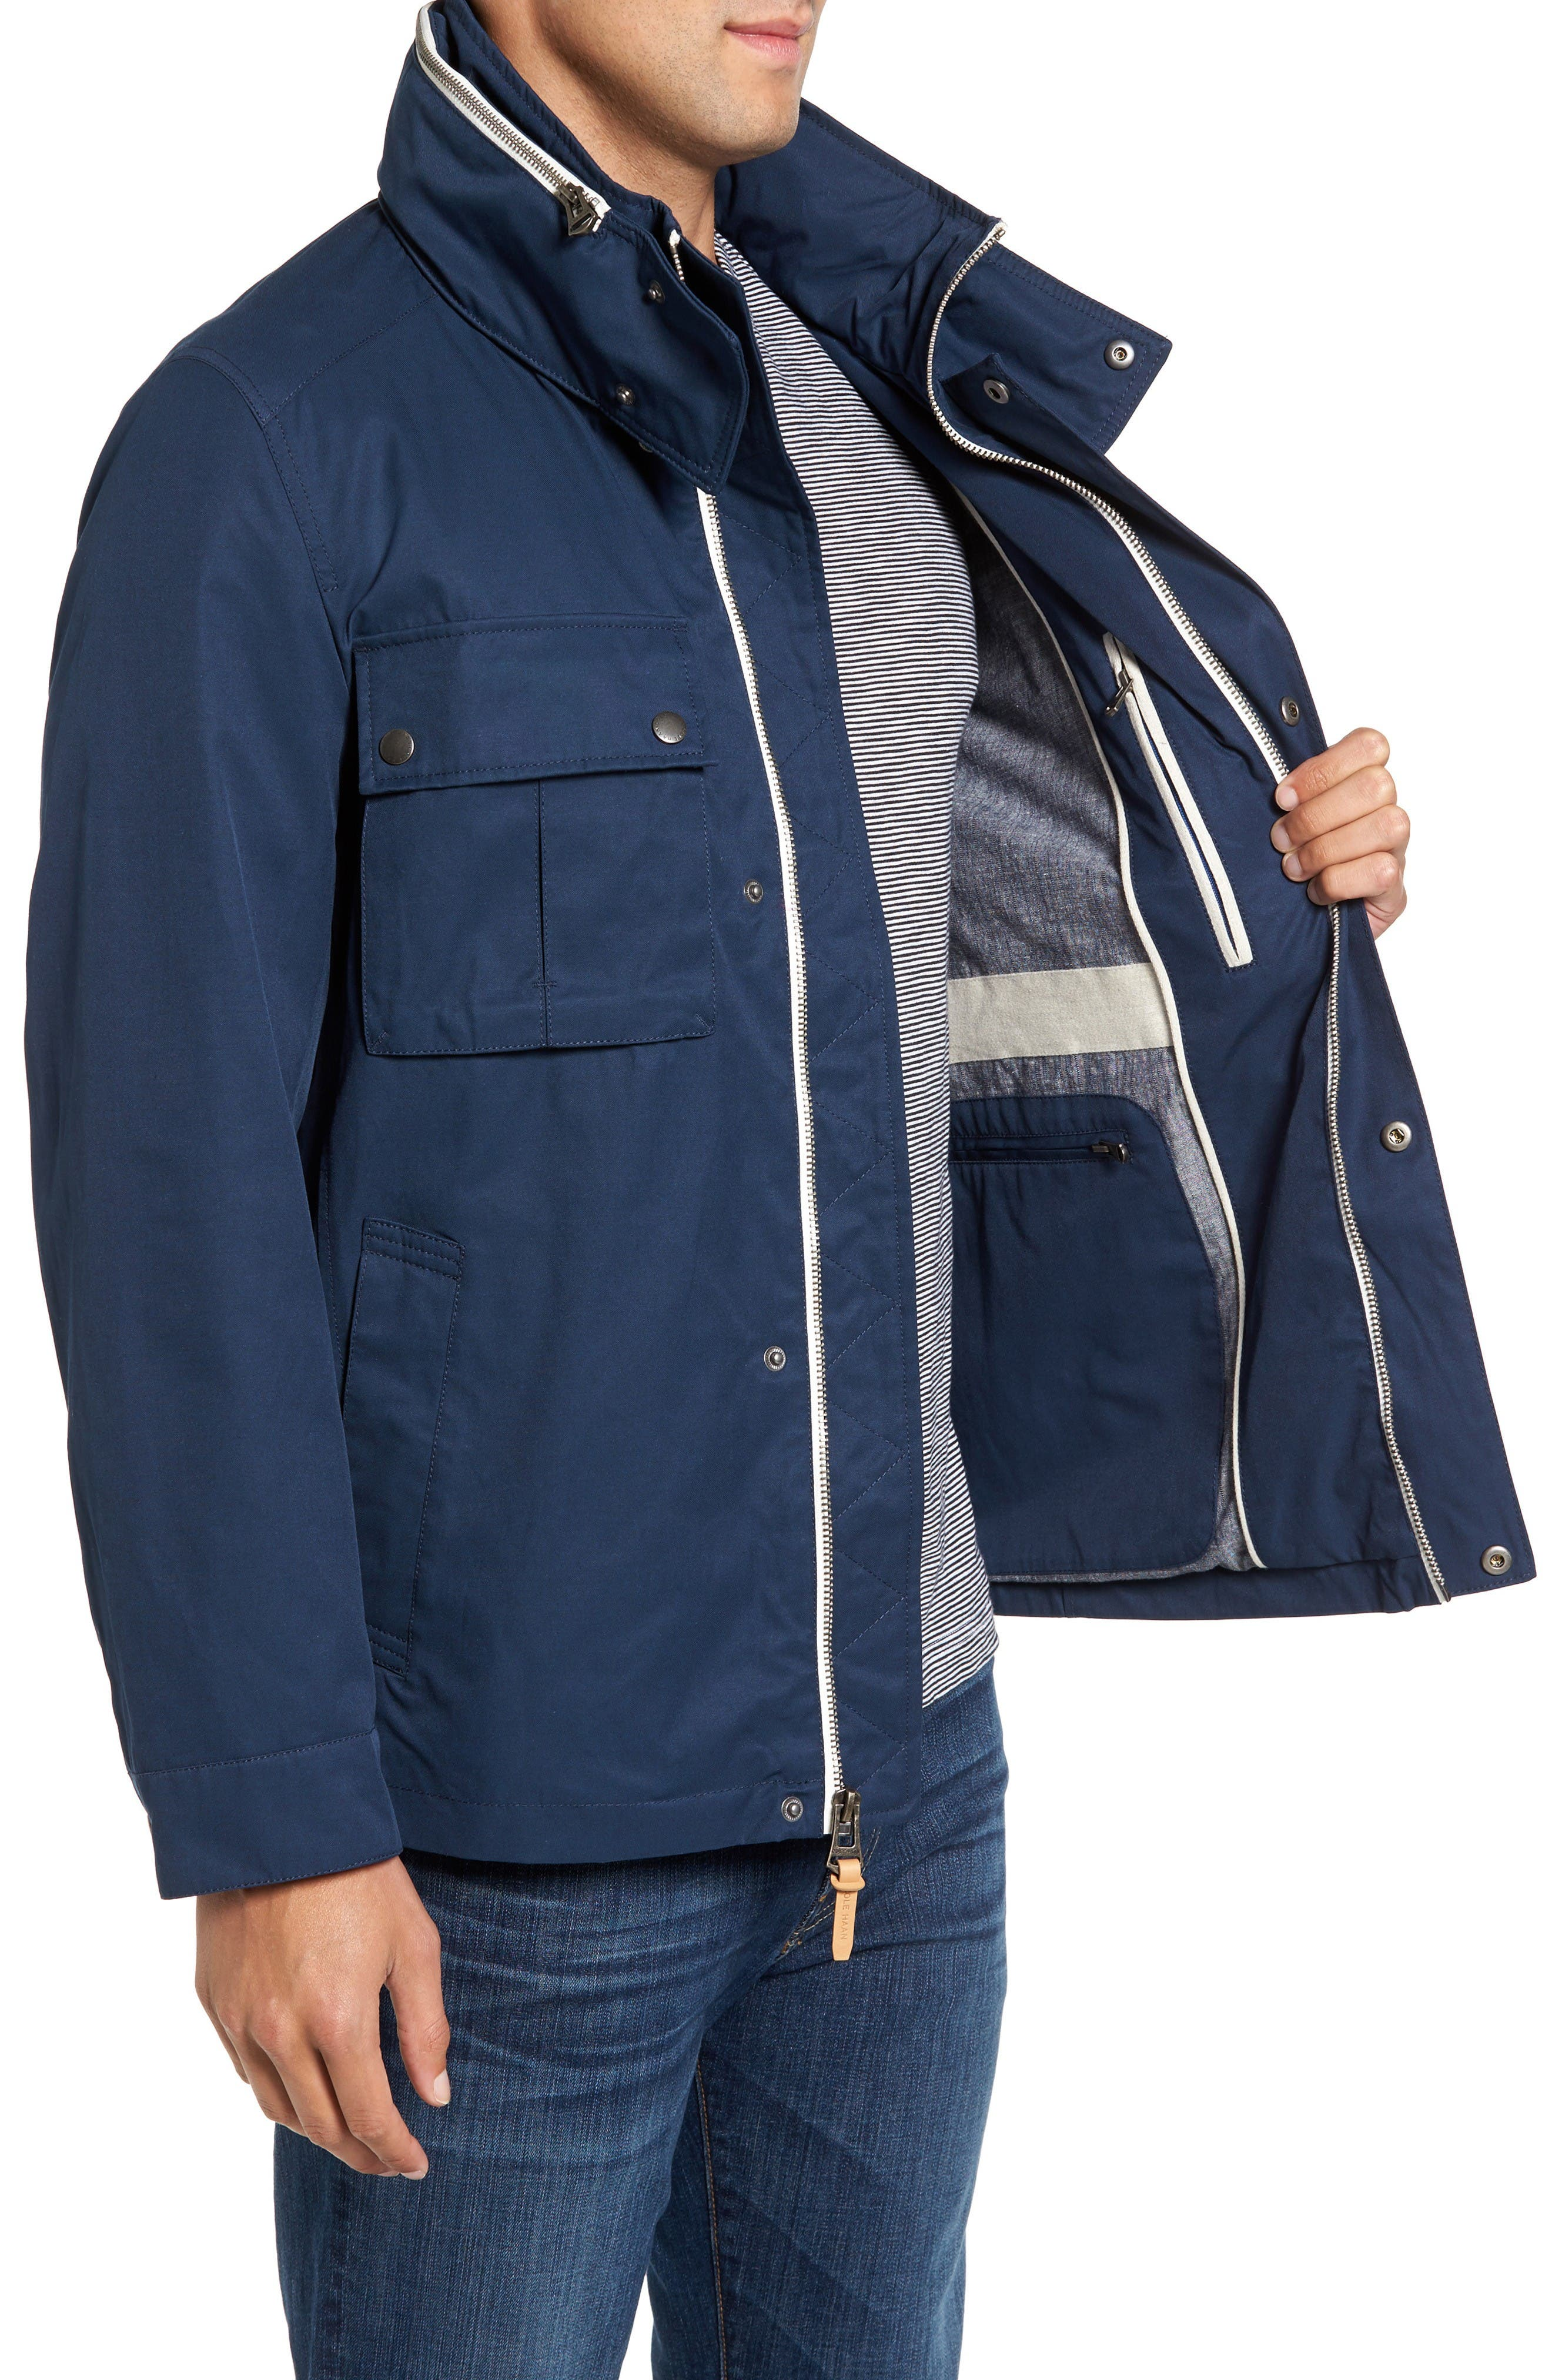 Military Oxford Jacket,                             Alternate thumbnail 3, color,                             Indigo